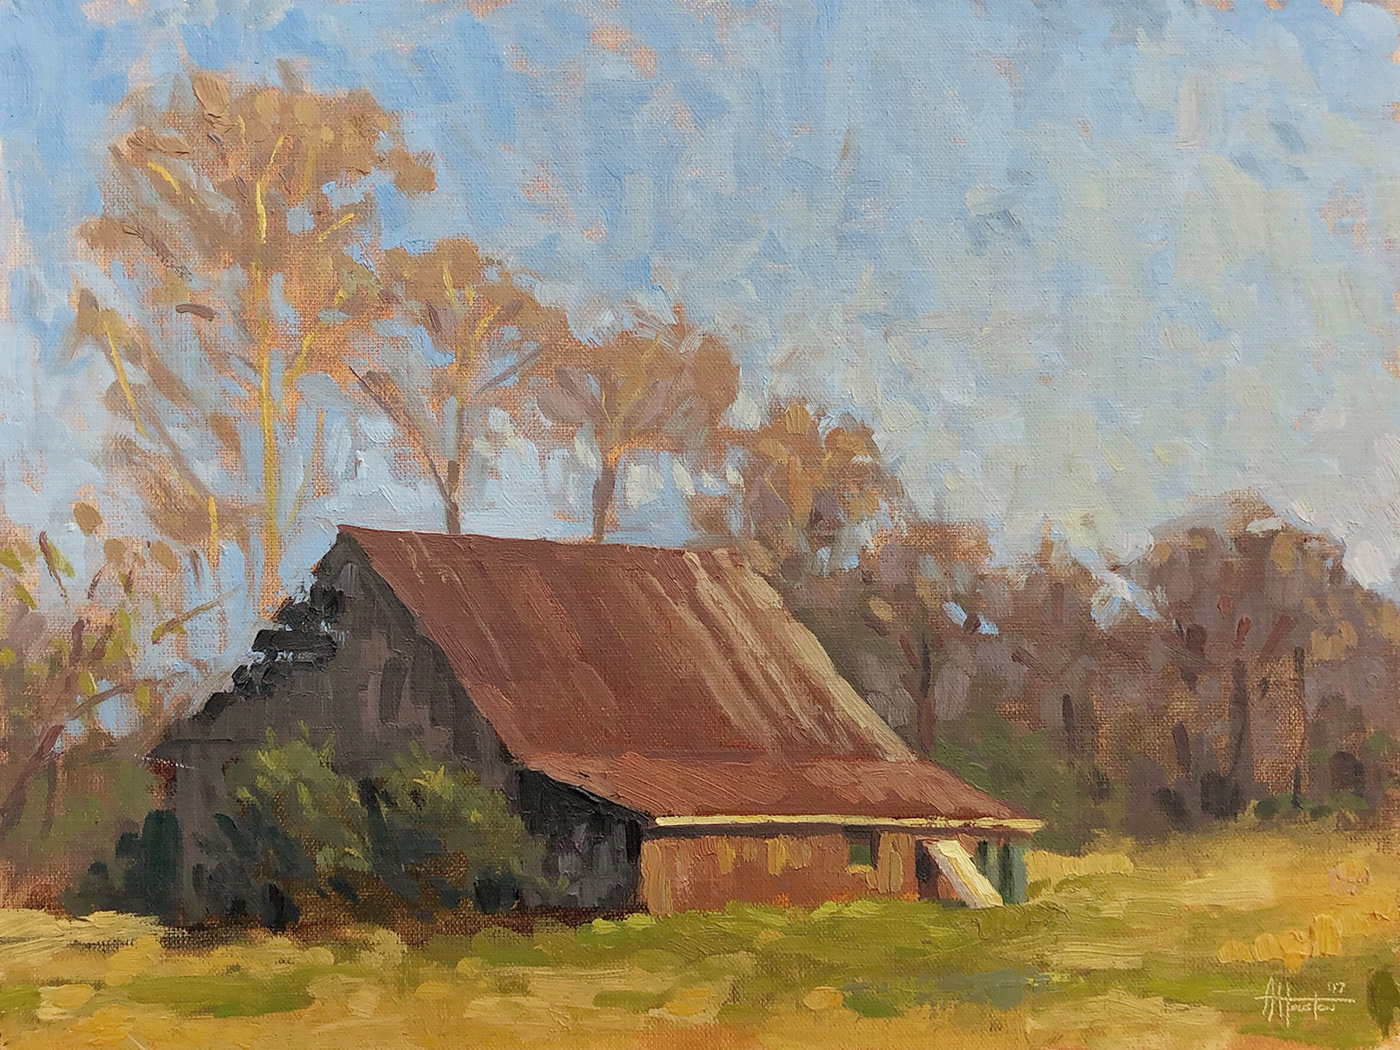 Sunlit Barn - Impressionist Painting by Adam Houston